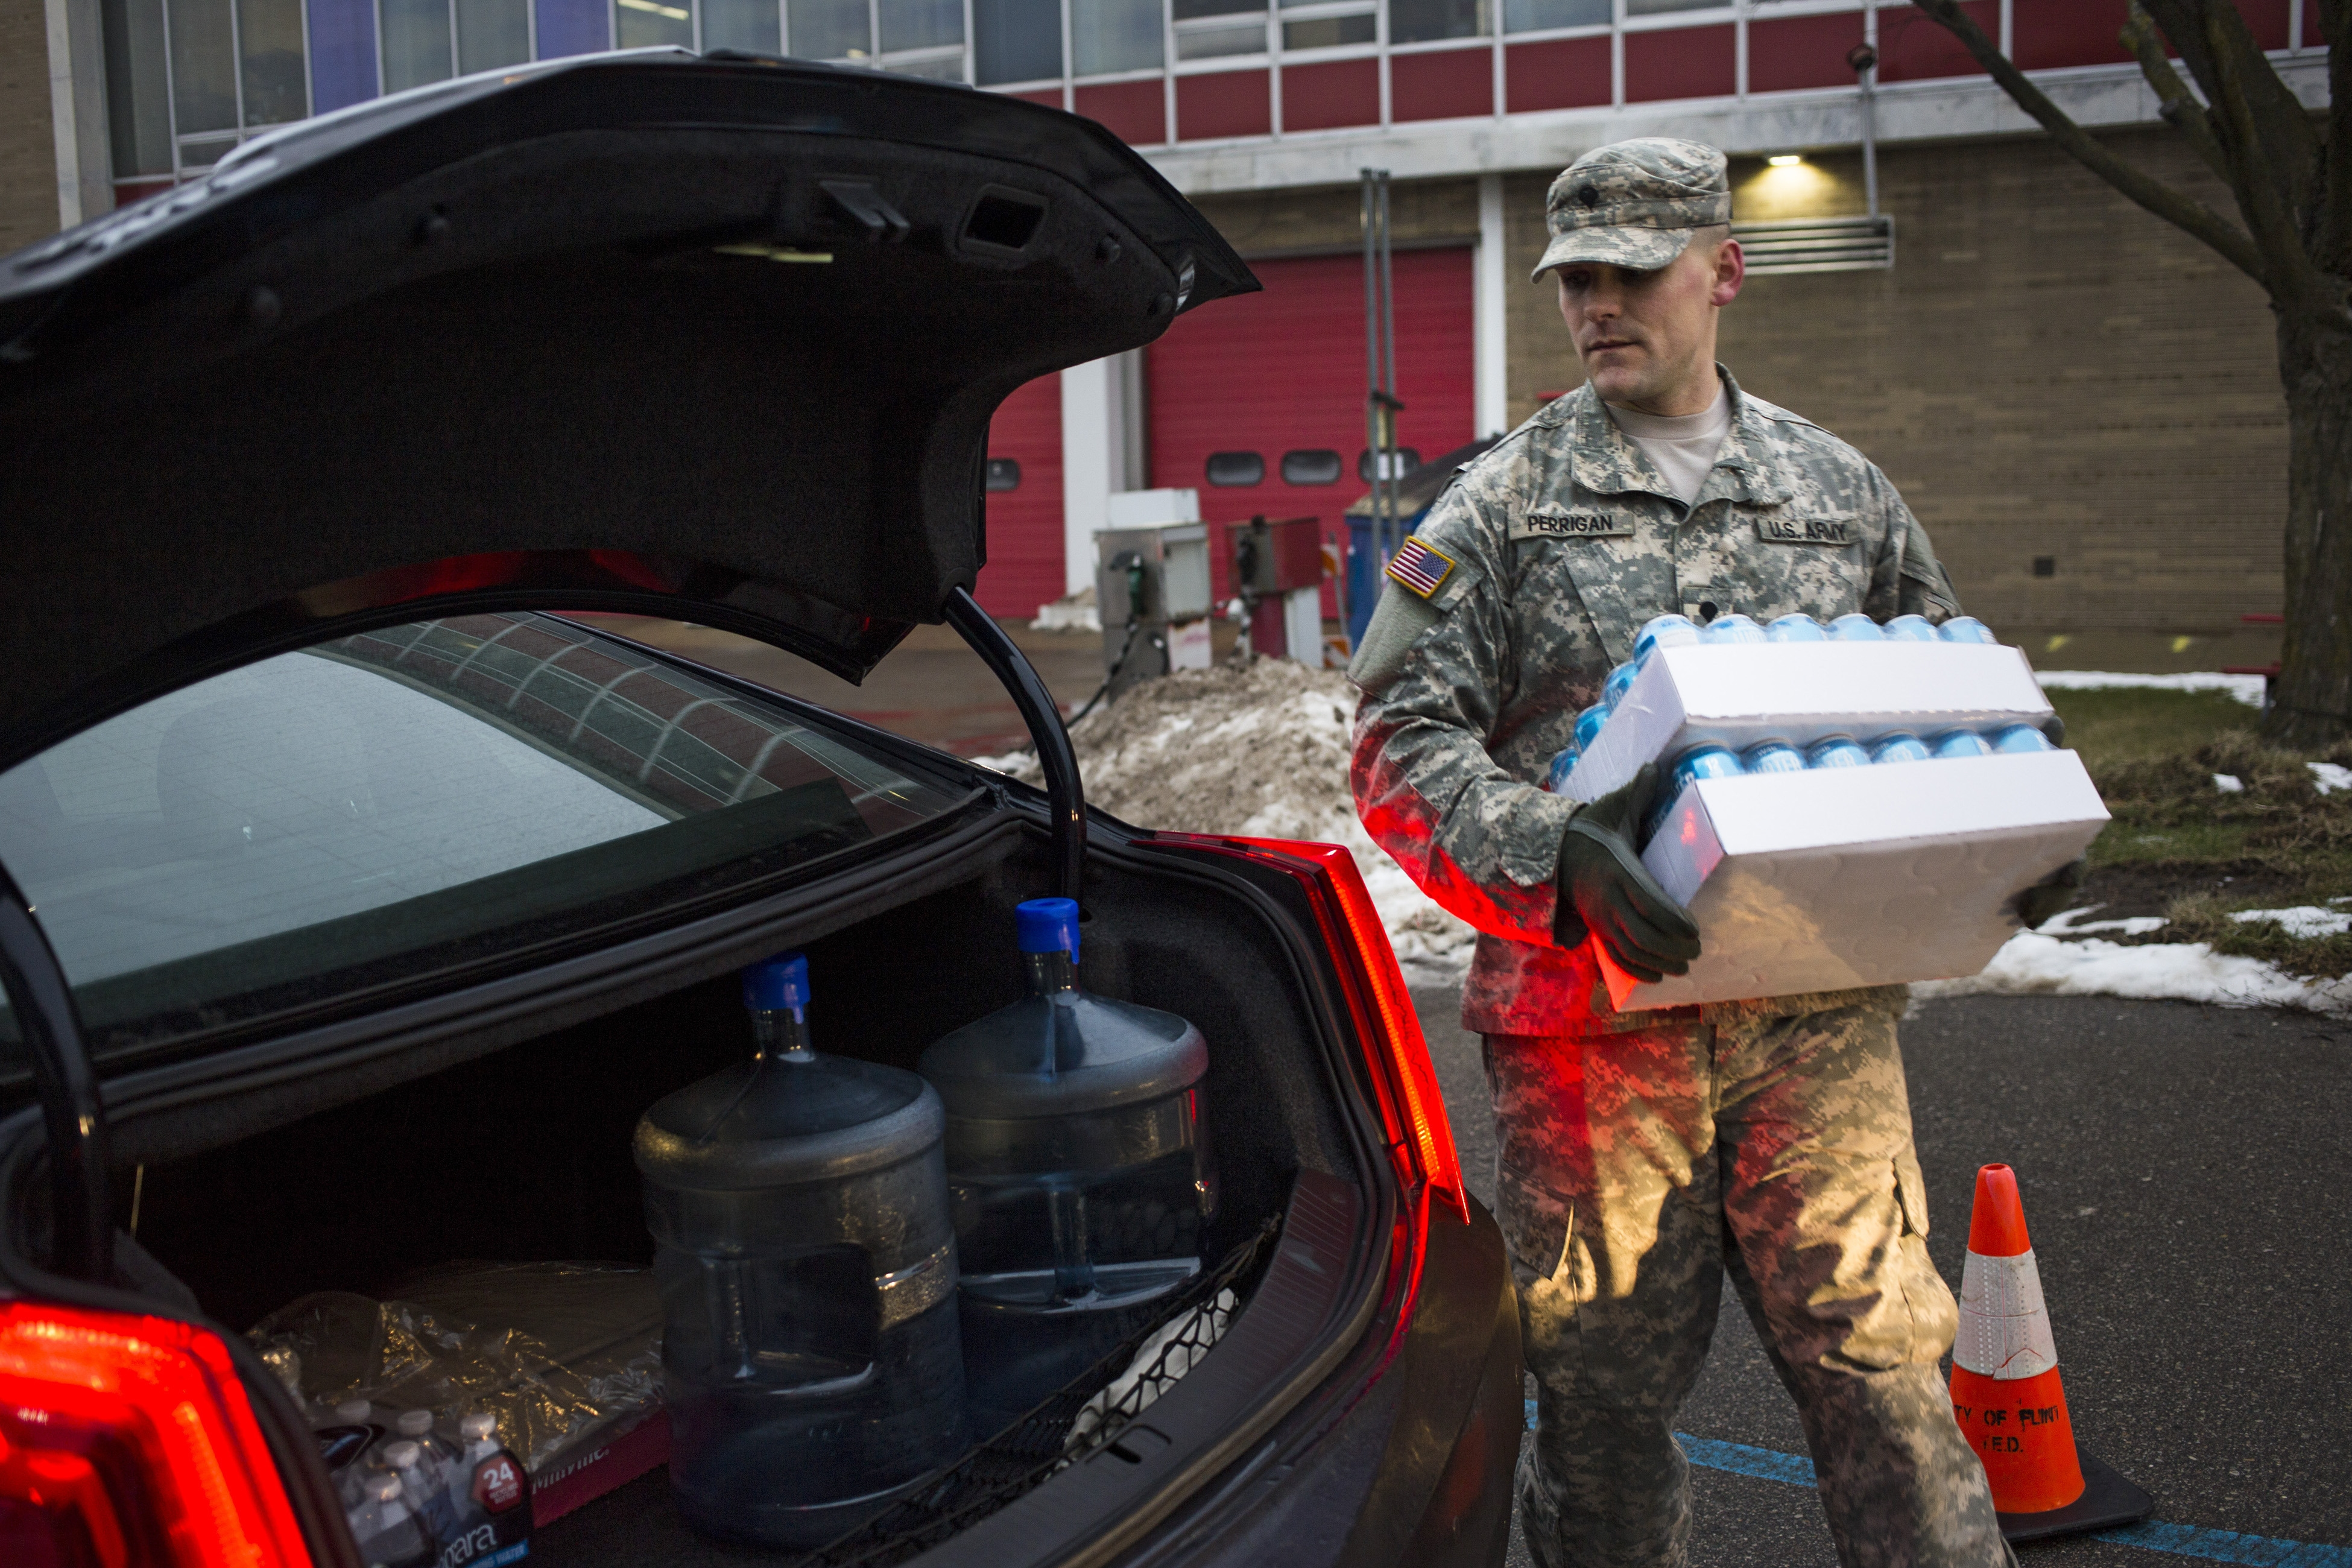 The national Guard is helping distribute water in Flint, Mich. Here, Spc. Eric Perrigan loads cases of water into a resident's car at a Flint fire station. (New York Times photo)